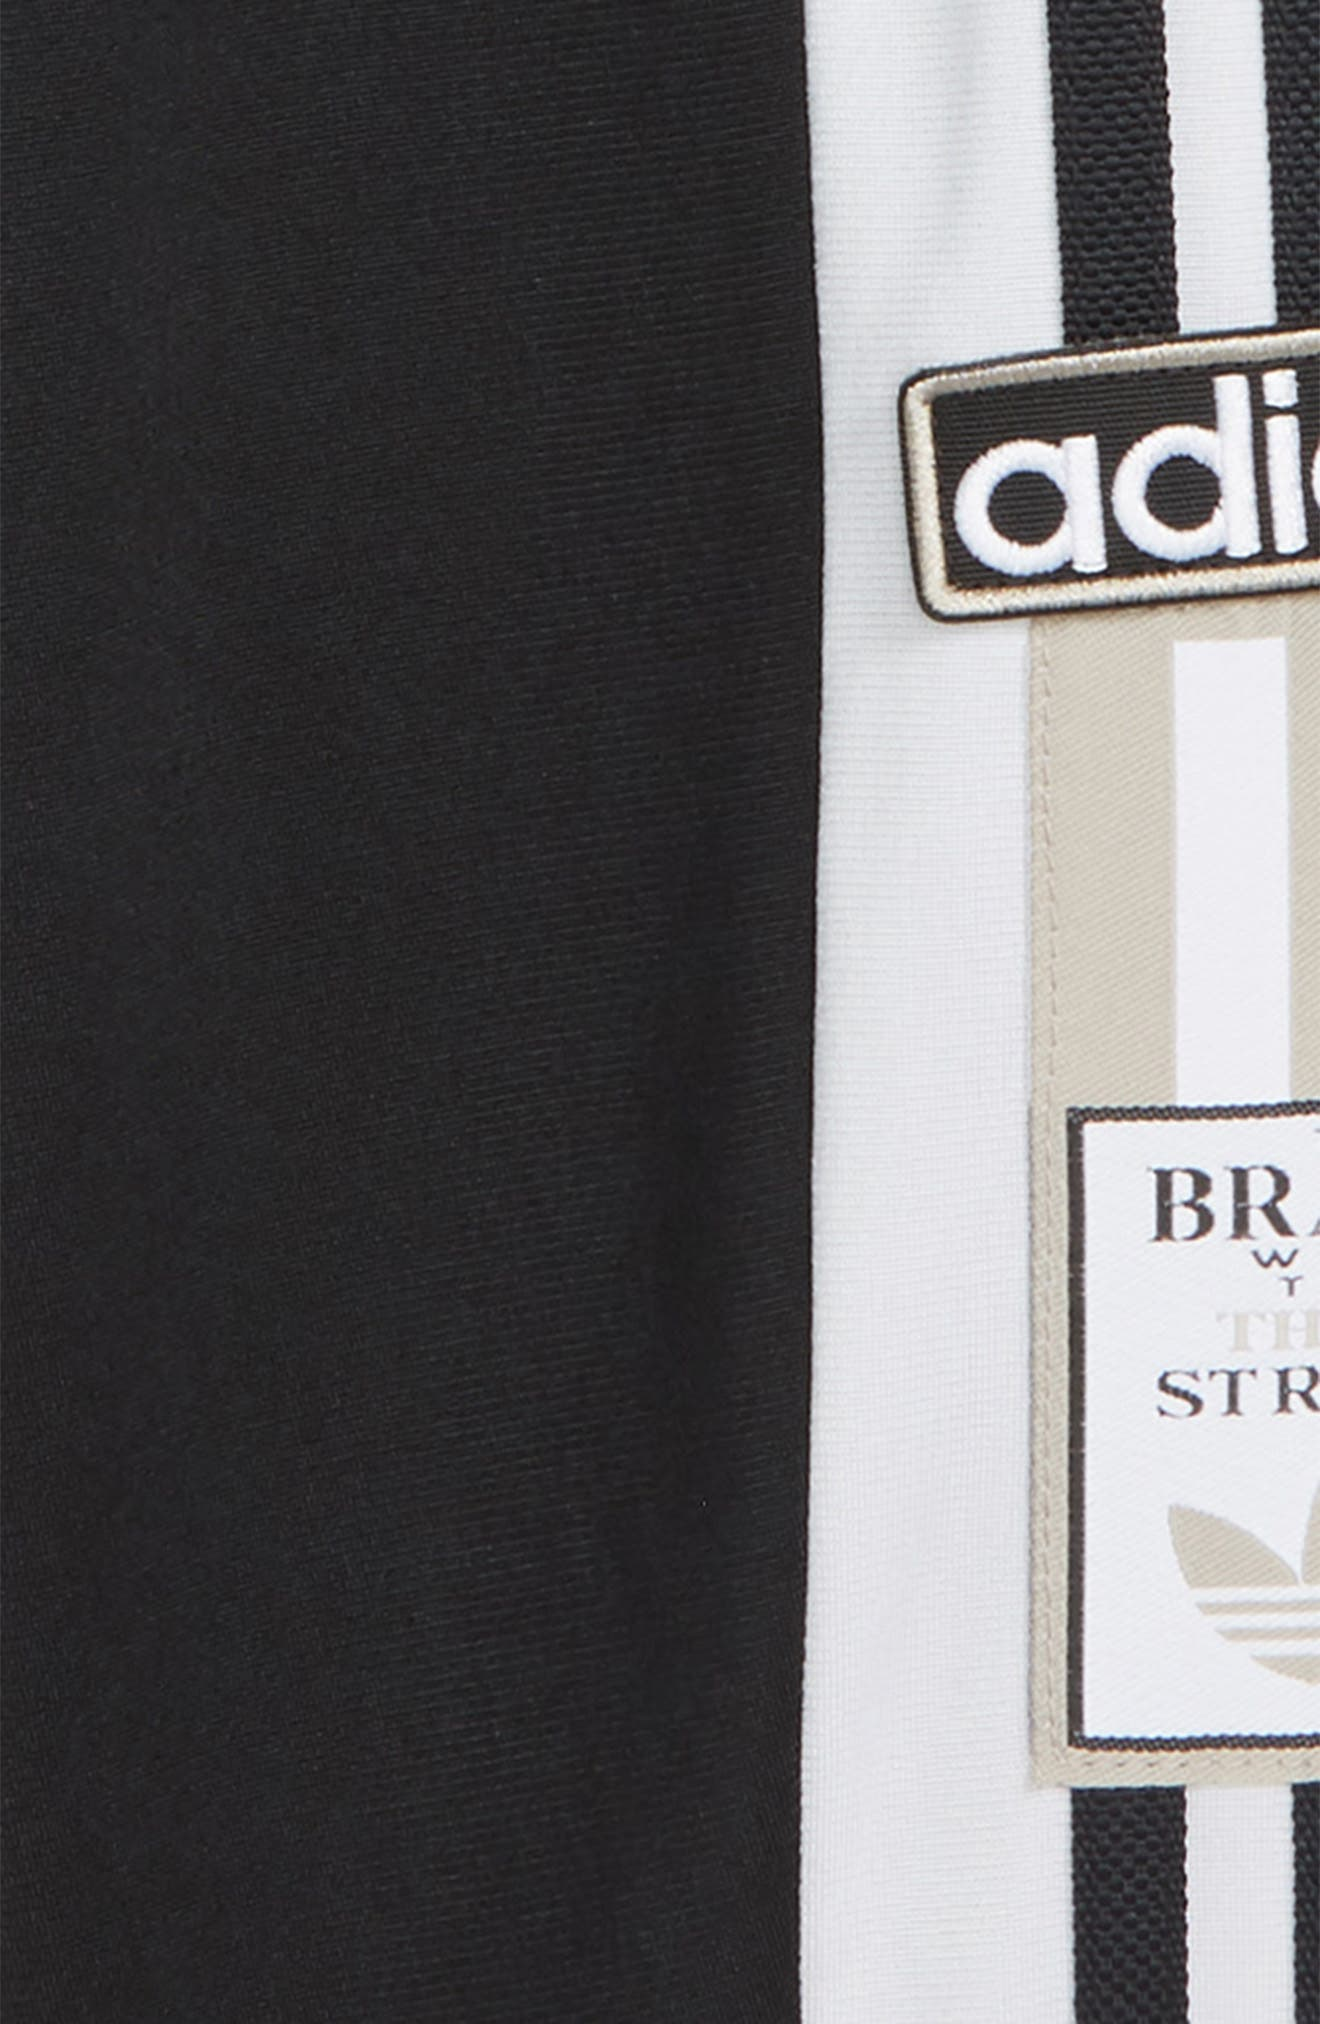 ADIDAS ORIGINALS, Adibreak Sweatpants, Alternate thumbnail 2, color, BLACK/ WHITE